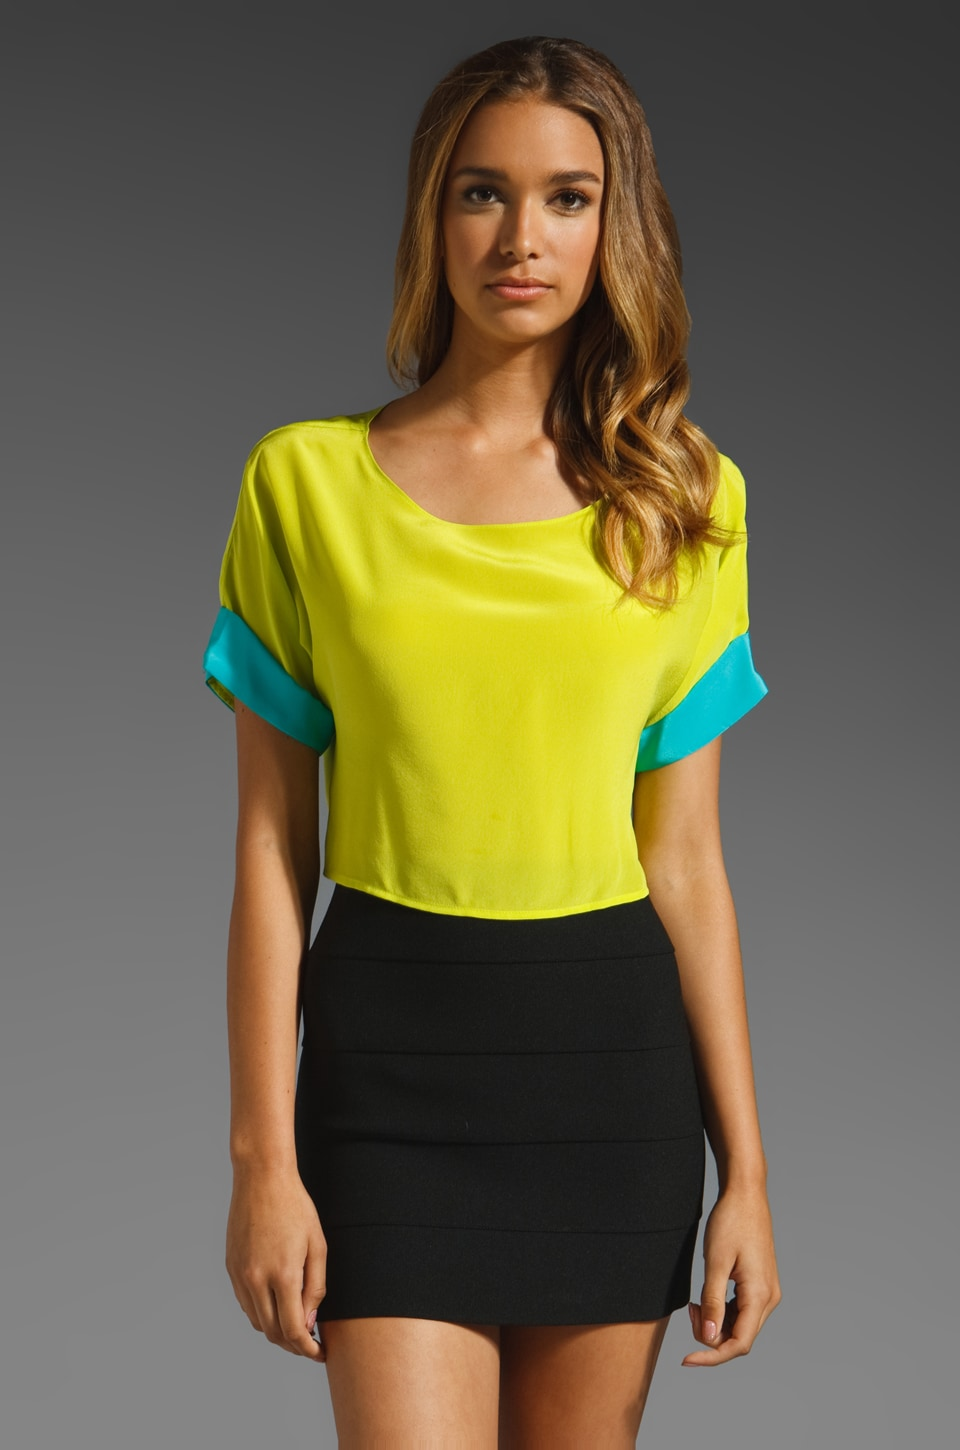 Naven Kimono Crop Top in Chartreuse/Turquoise